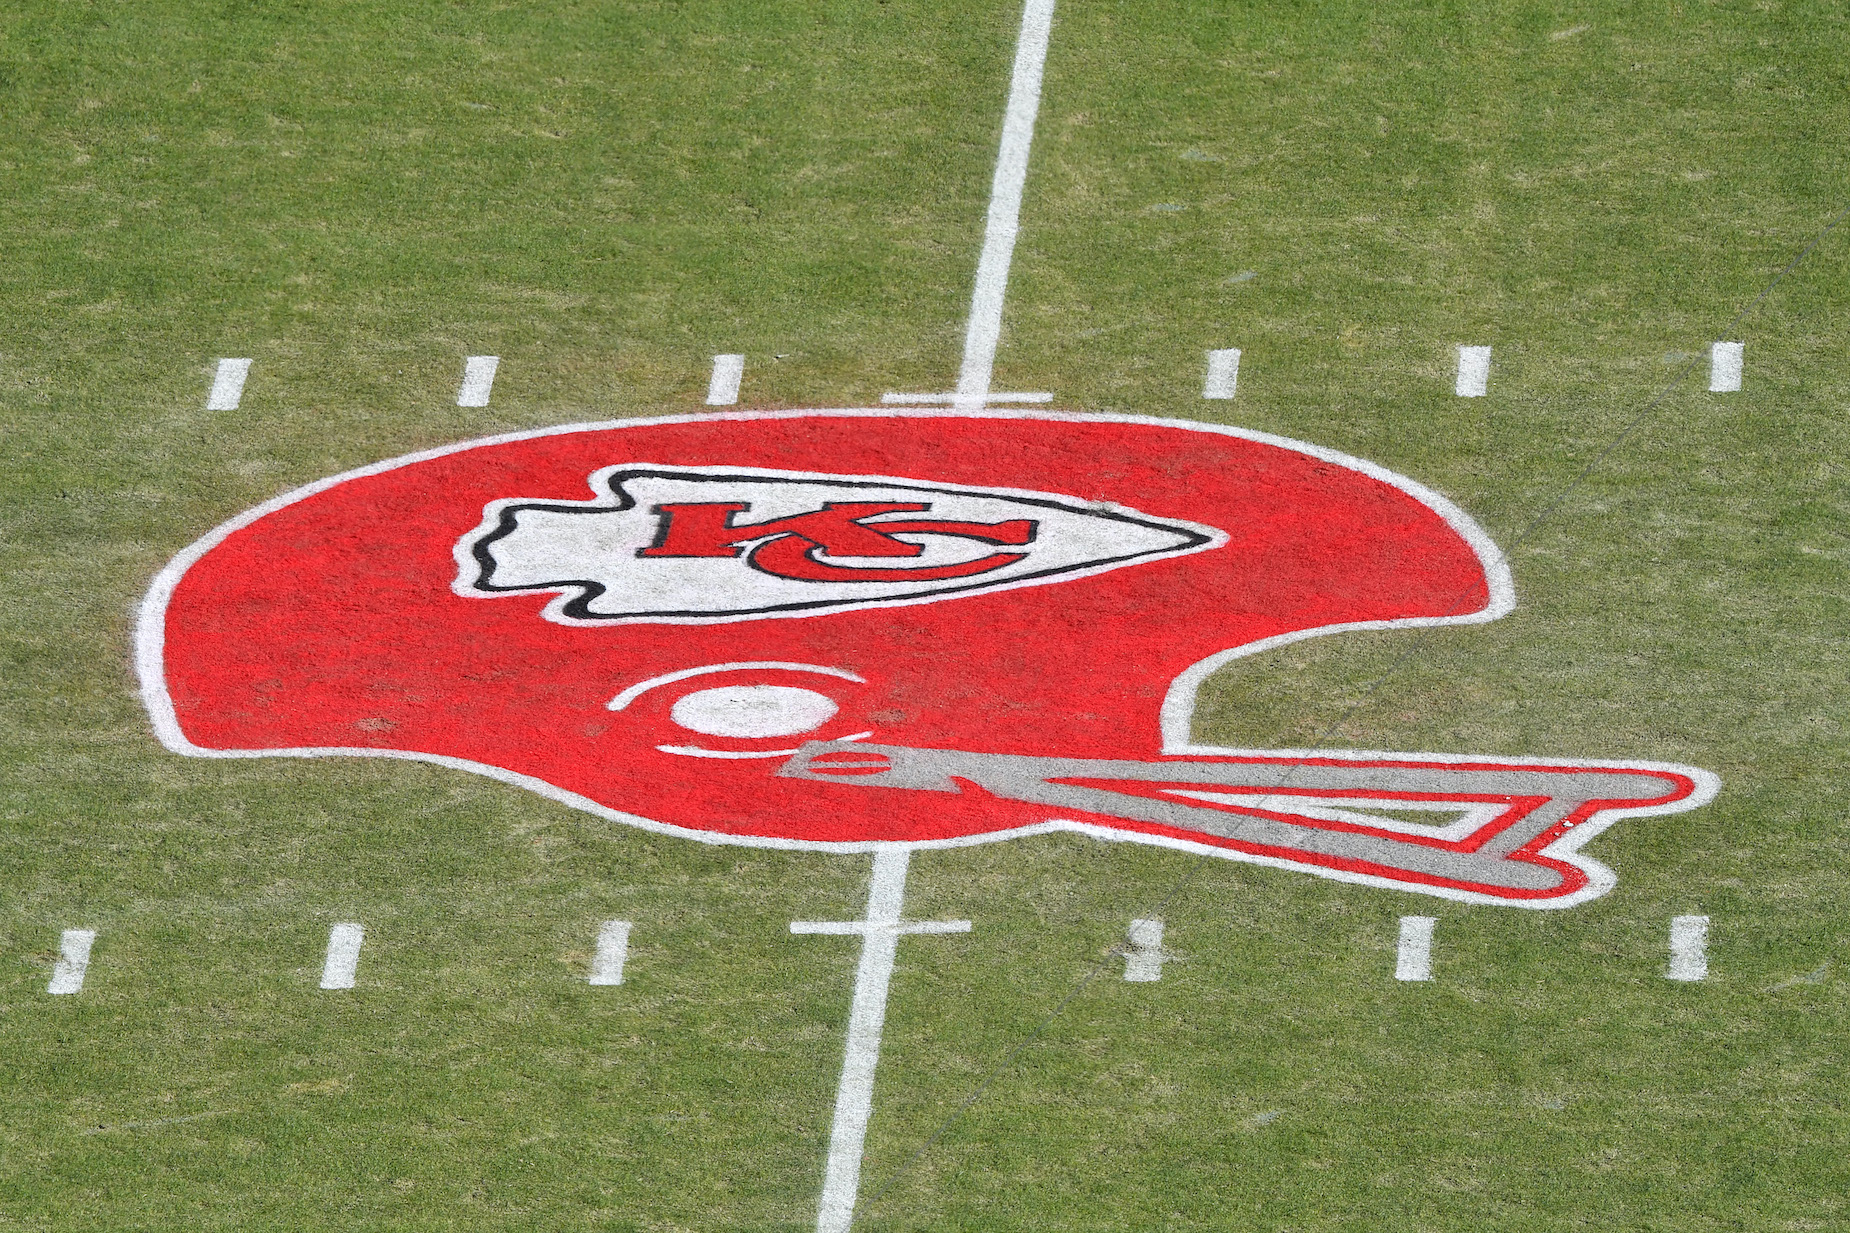 Kansas City Chiefs Fans Aren't Thrilled About Their Team's Latest Offseason Move